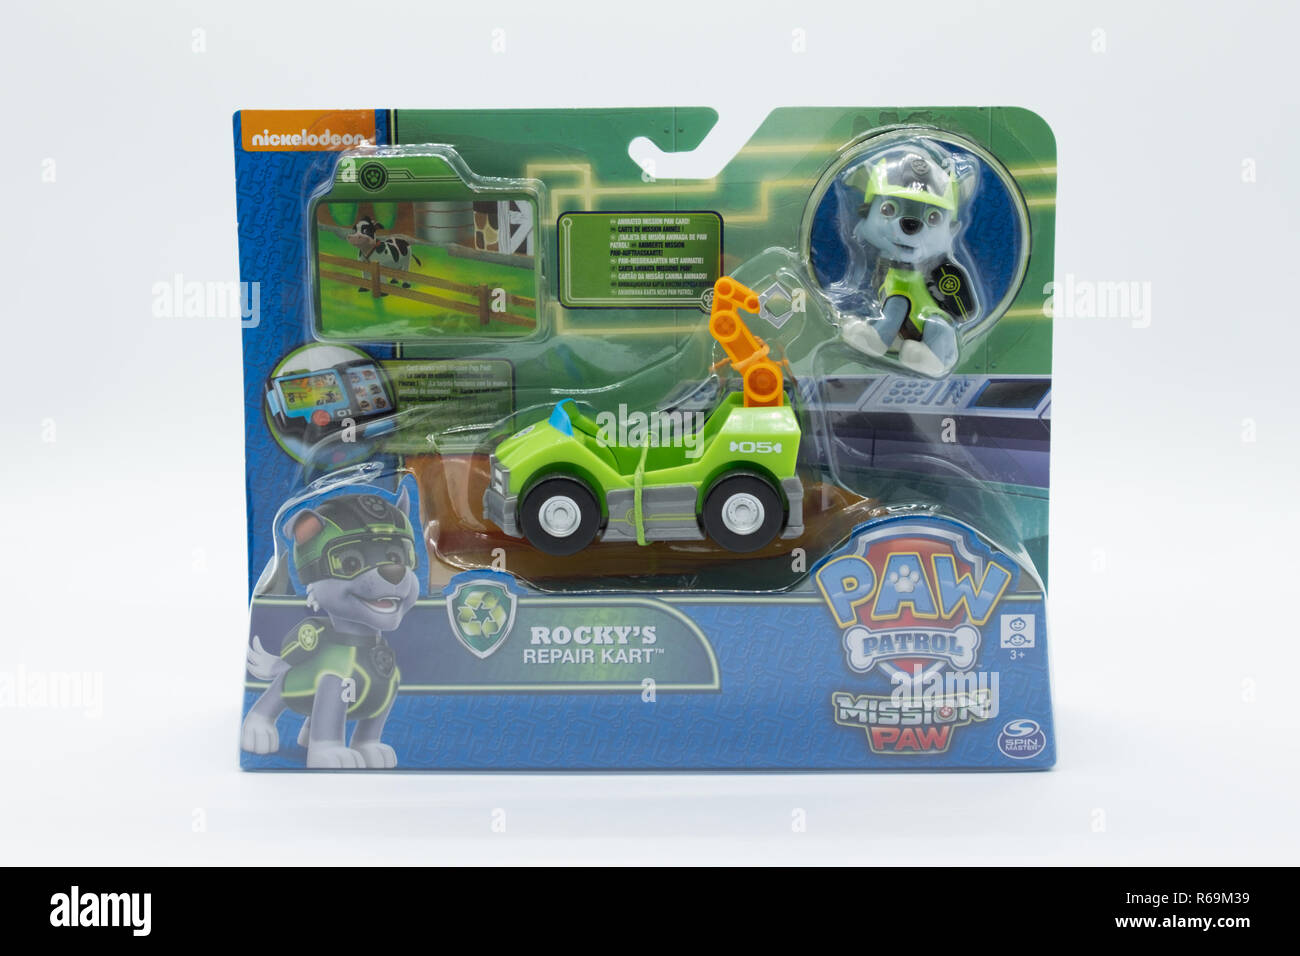 Largs, Scotland, UK - November 29, 2018: Nickelodeon branded Paw Patrol child's Toy in partially recyclable packaging in line with UK initiatives - Stock Image